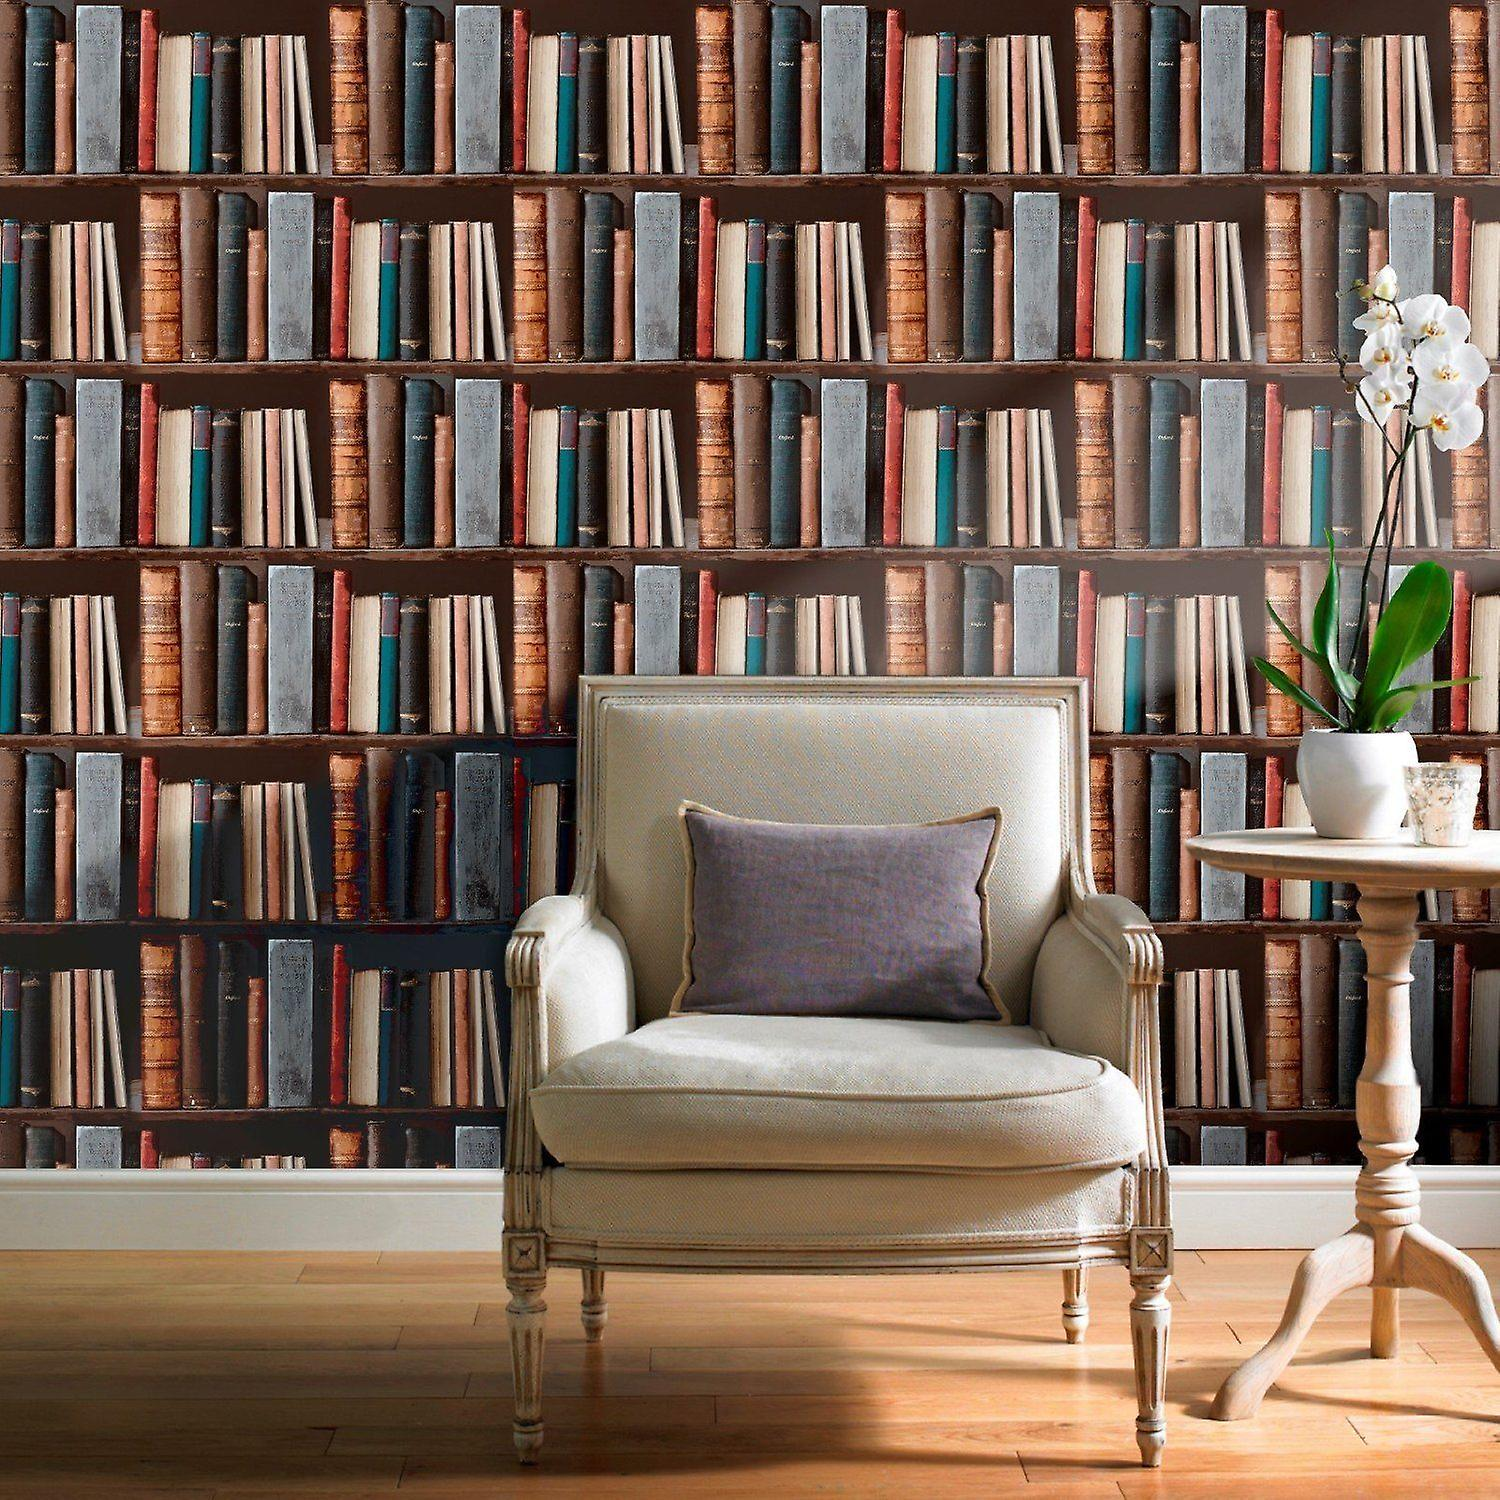 Bookcase Wallpaper Library Books Retro Classic Vintage Antique